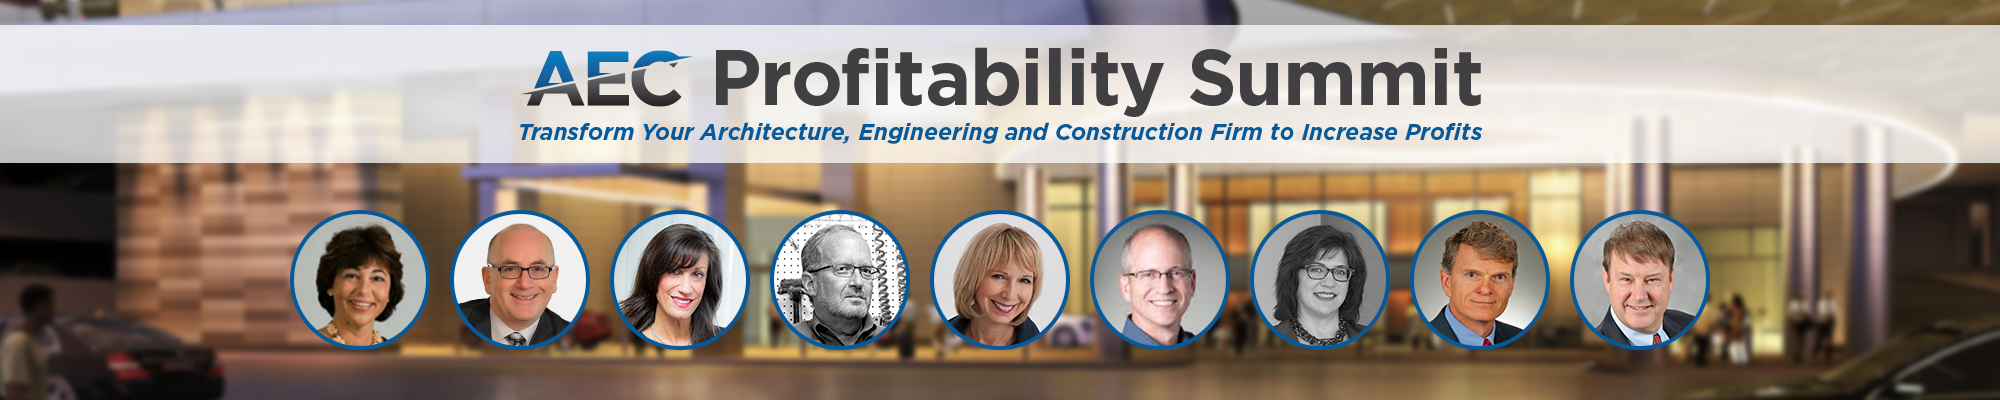 AEC Profitability Summit Transform Your Architecture Engineering and Construction Firm to Increase Profits Header-1